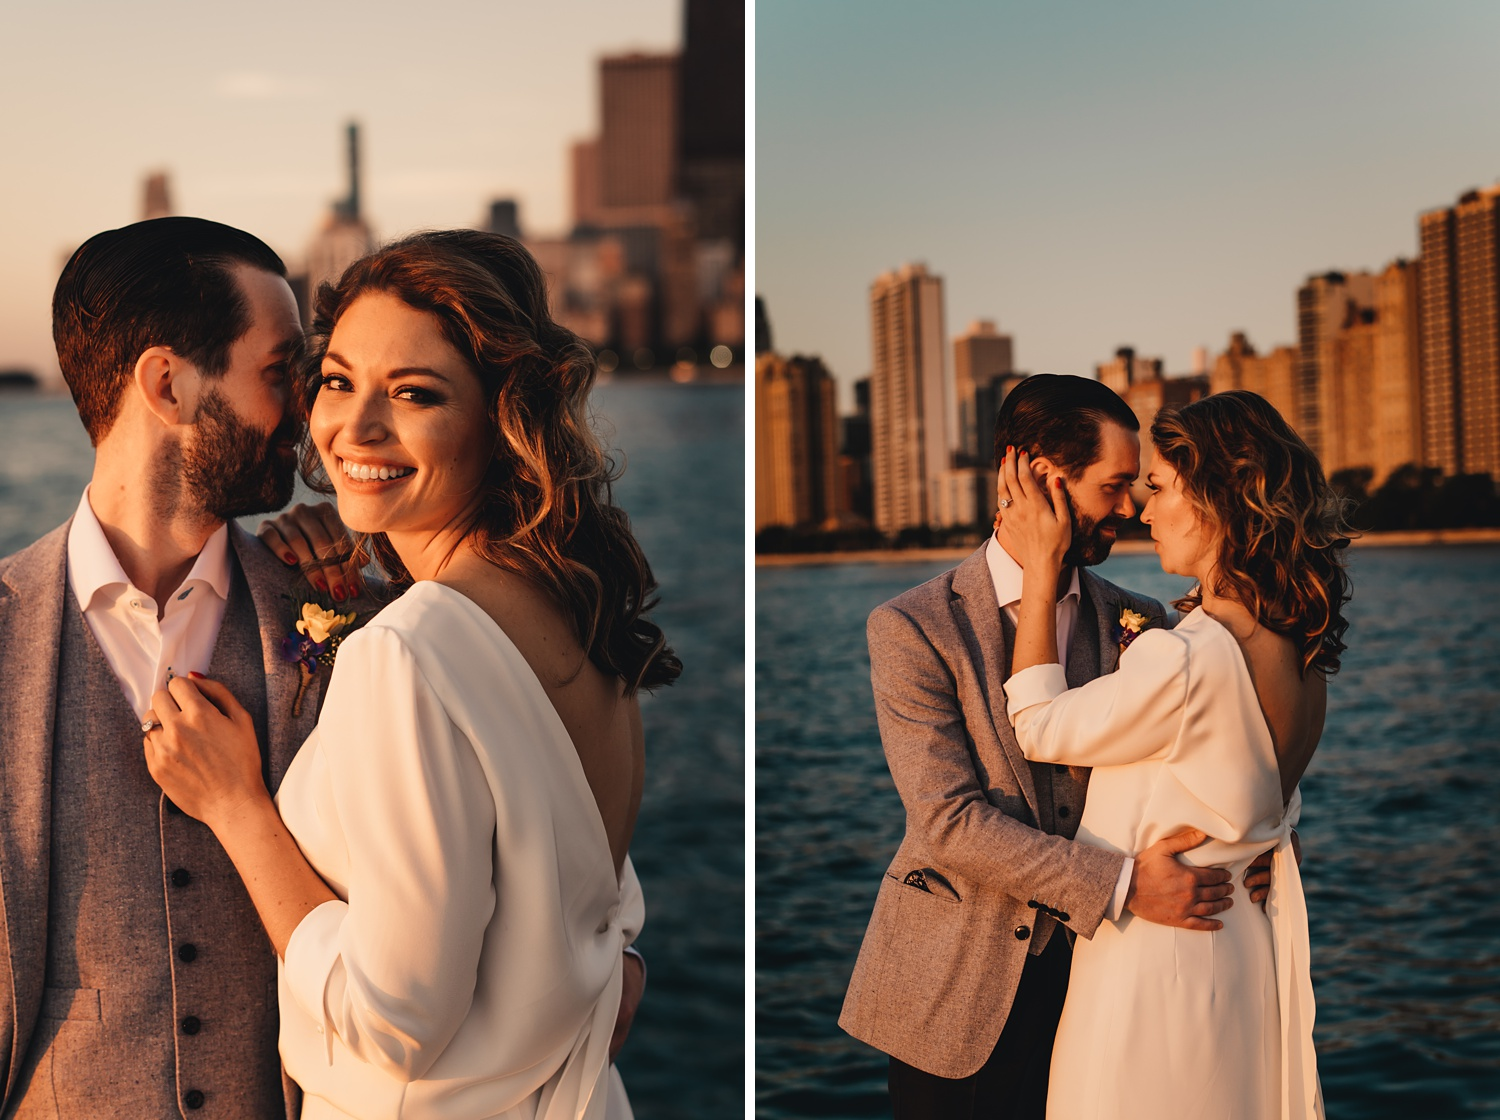 Sunrise Chicago Wedding - The Adamkovi, bride and groom creative portraits, Skyline